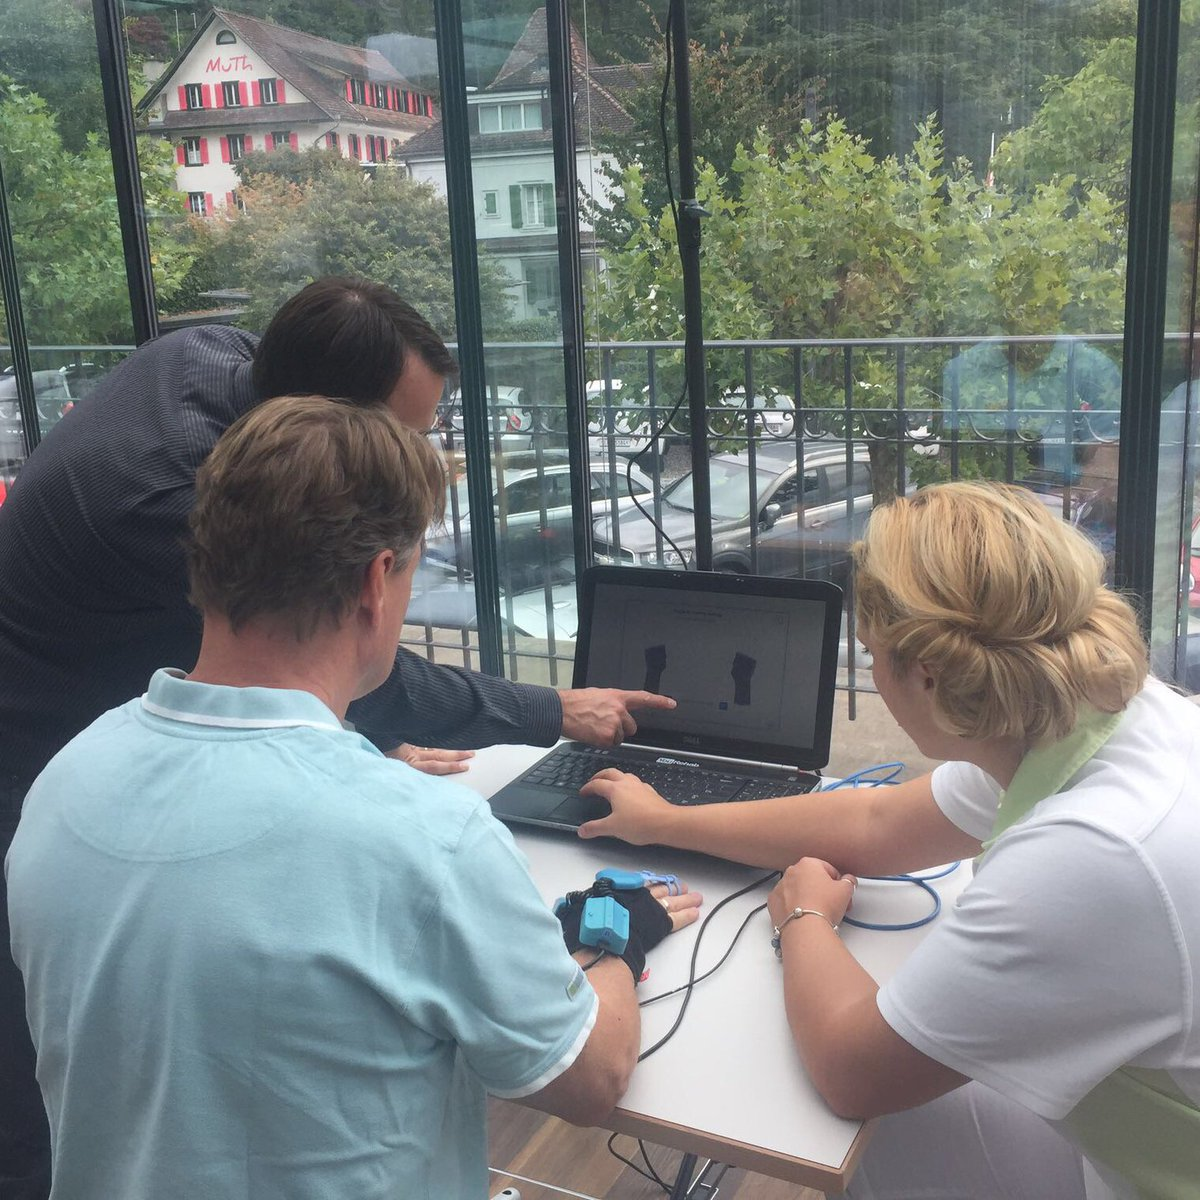 Interactive visuo-motor finger, hand and arm coordination training by @yourehab #YouGrabber #strokerecovery #technology<br>http://pic.twitter.com/wVSYWlbY6a